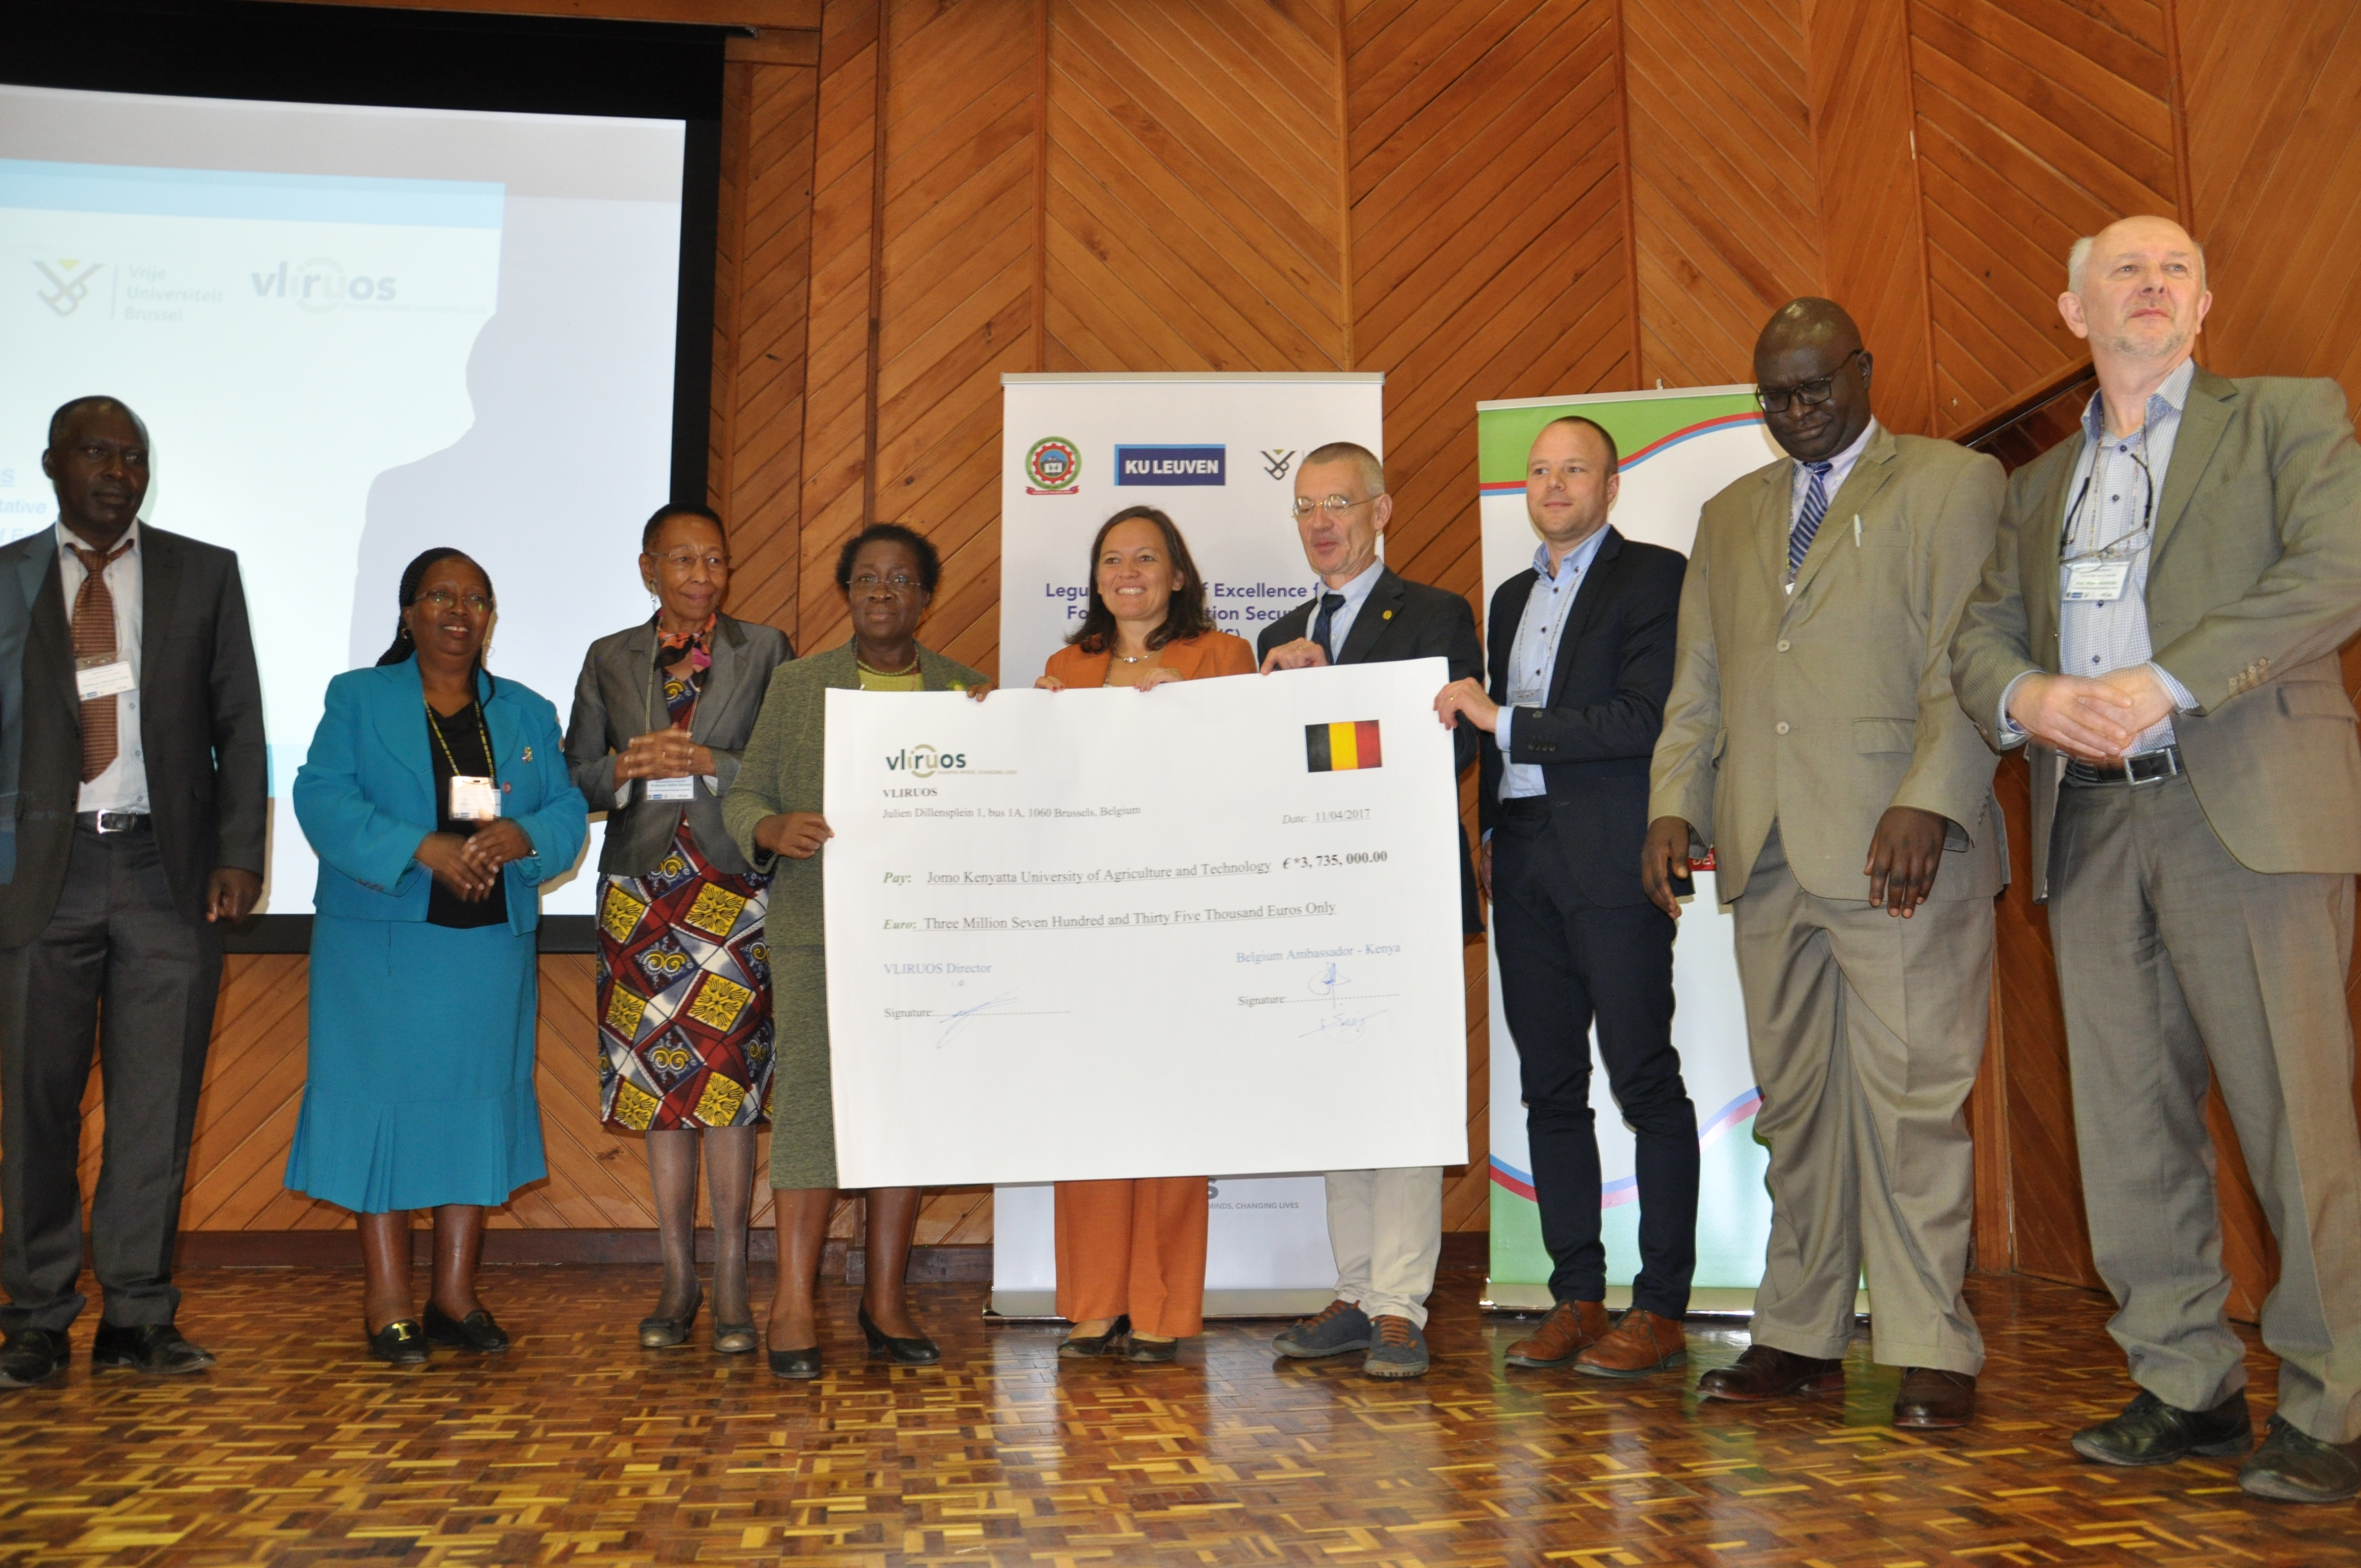 JKUAT Management and their Belgian Stakeholders show the dummy cheque donation that will support the legumes centre